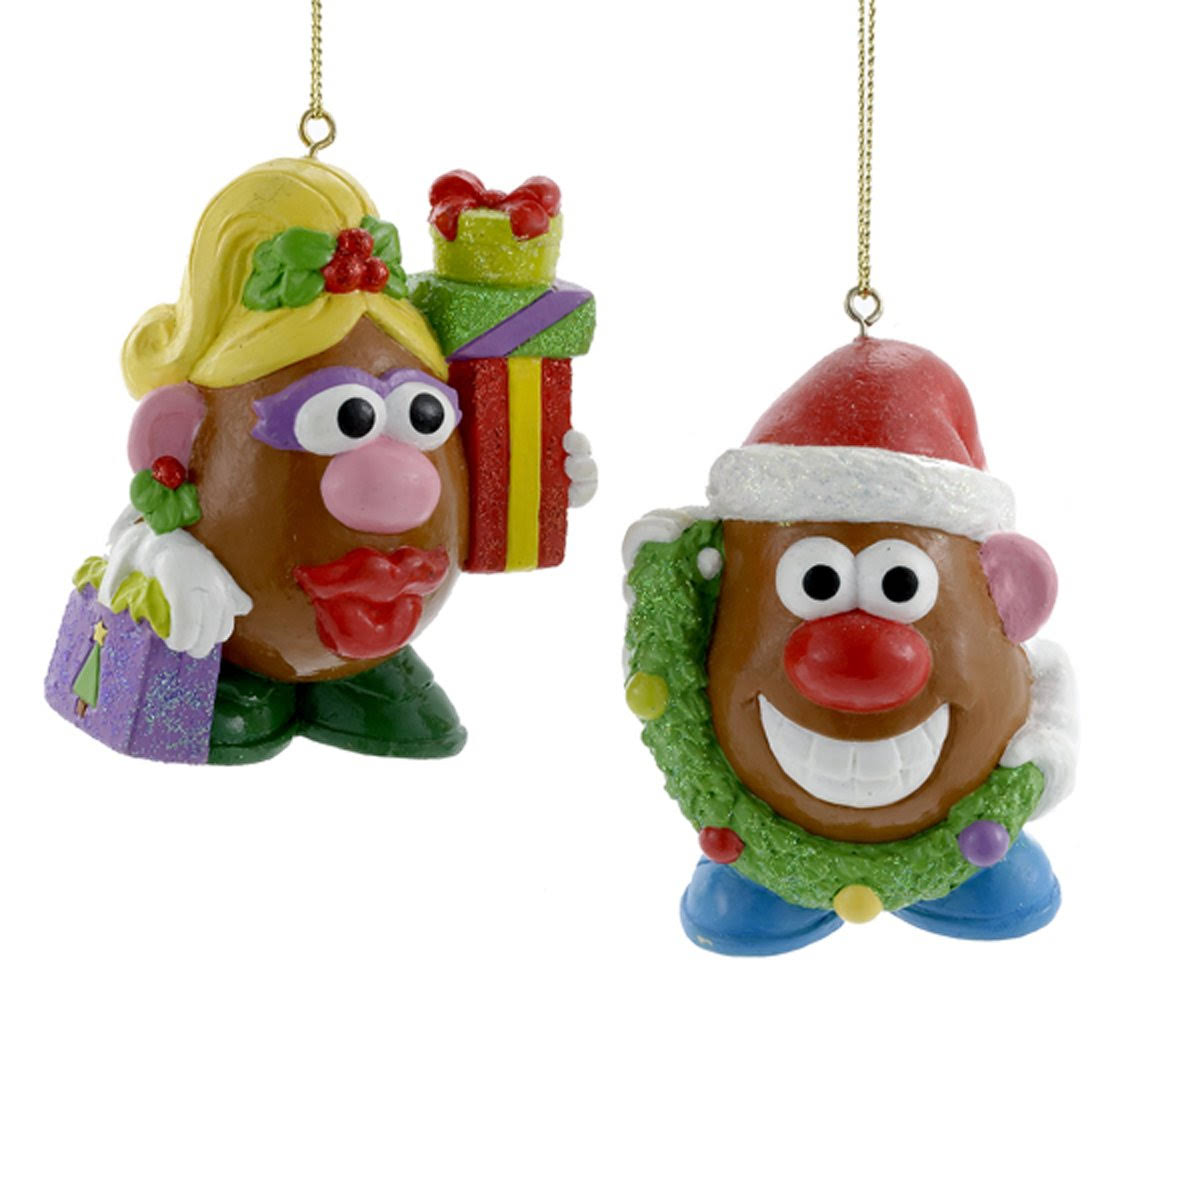 Mr. & Mrs. Potato Head Glass Ornament Set